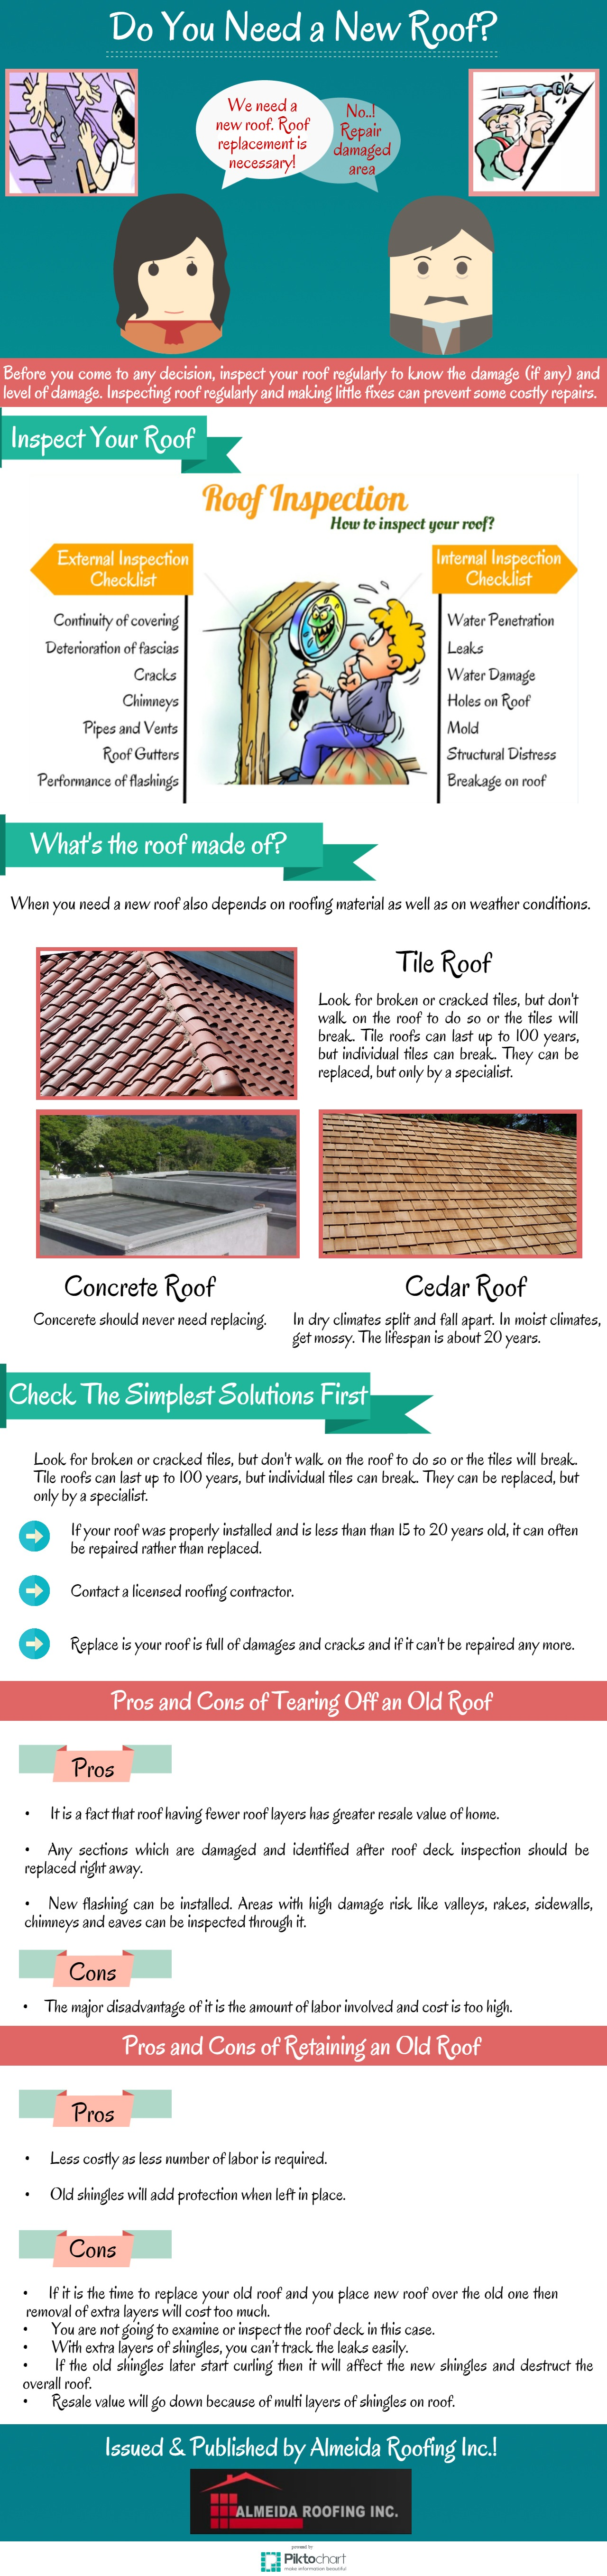 Do You Need A New Roof Got Confused With Reroofing And Roof Repair Check This Infographic To Know More About Roof Replacemen Roof Repair Roof Inspection Roof